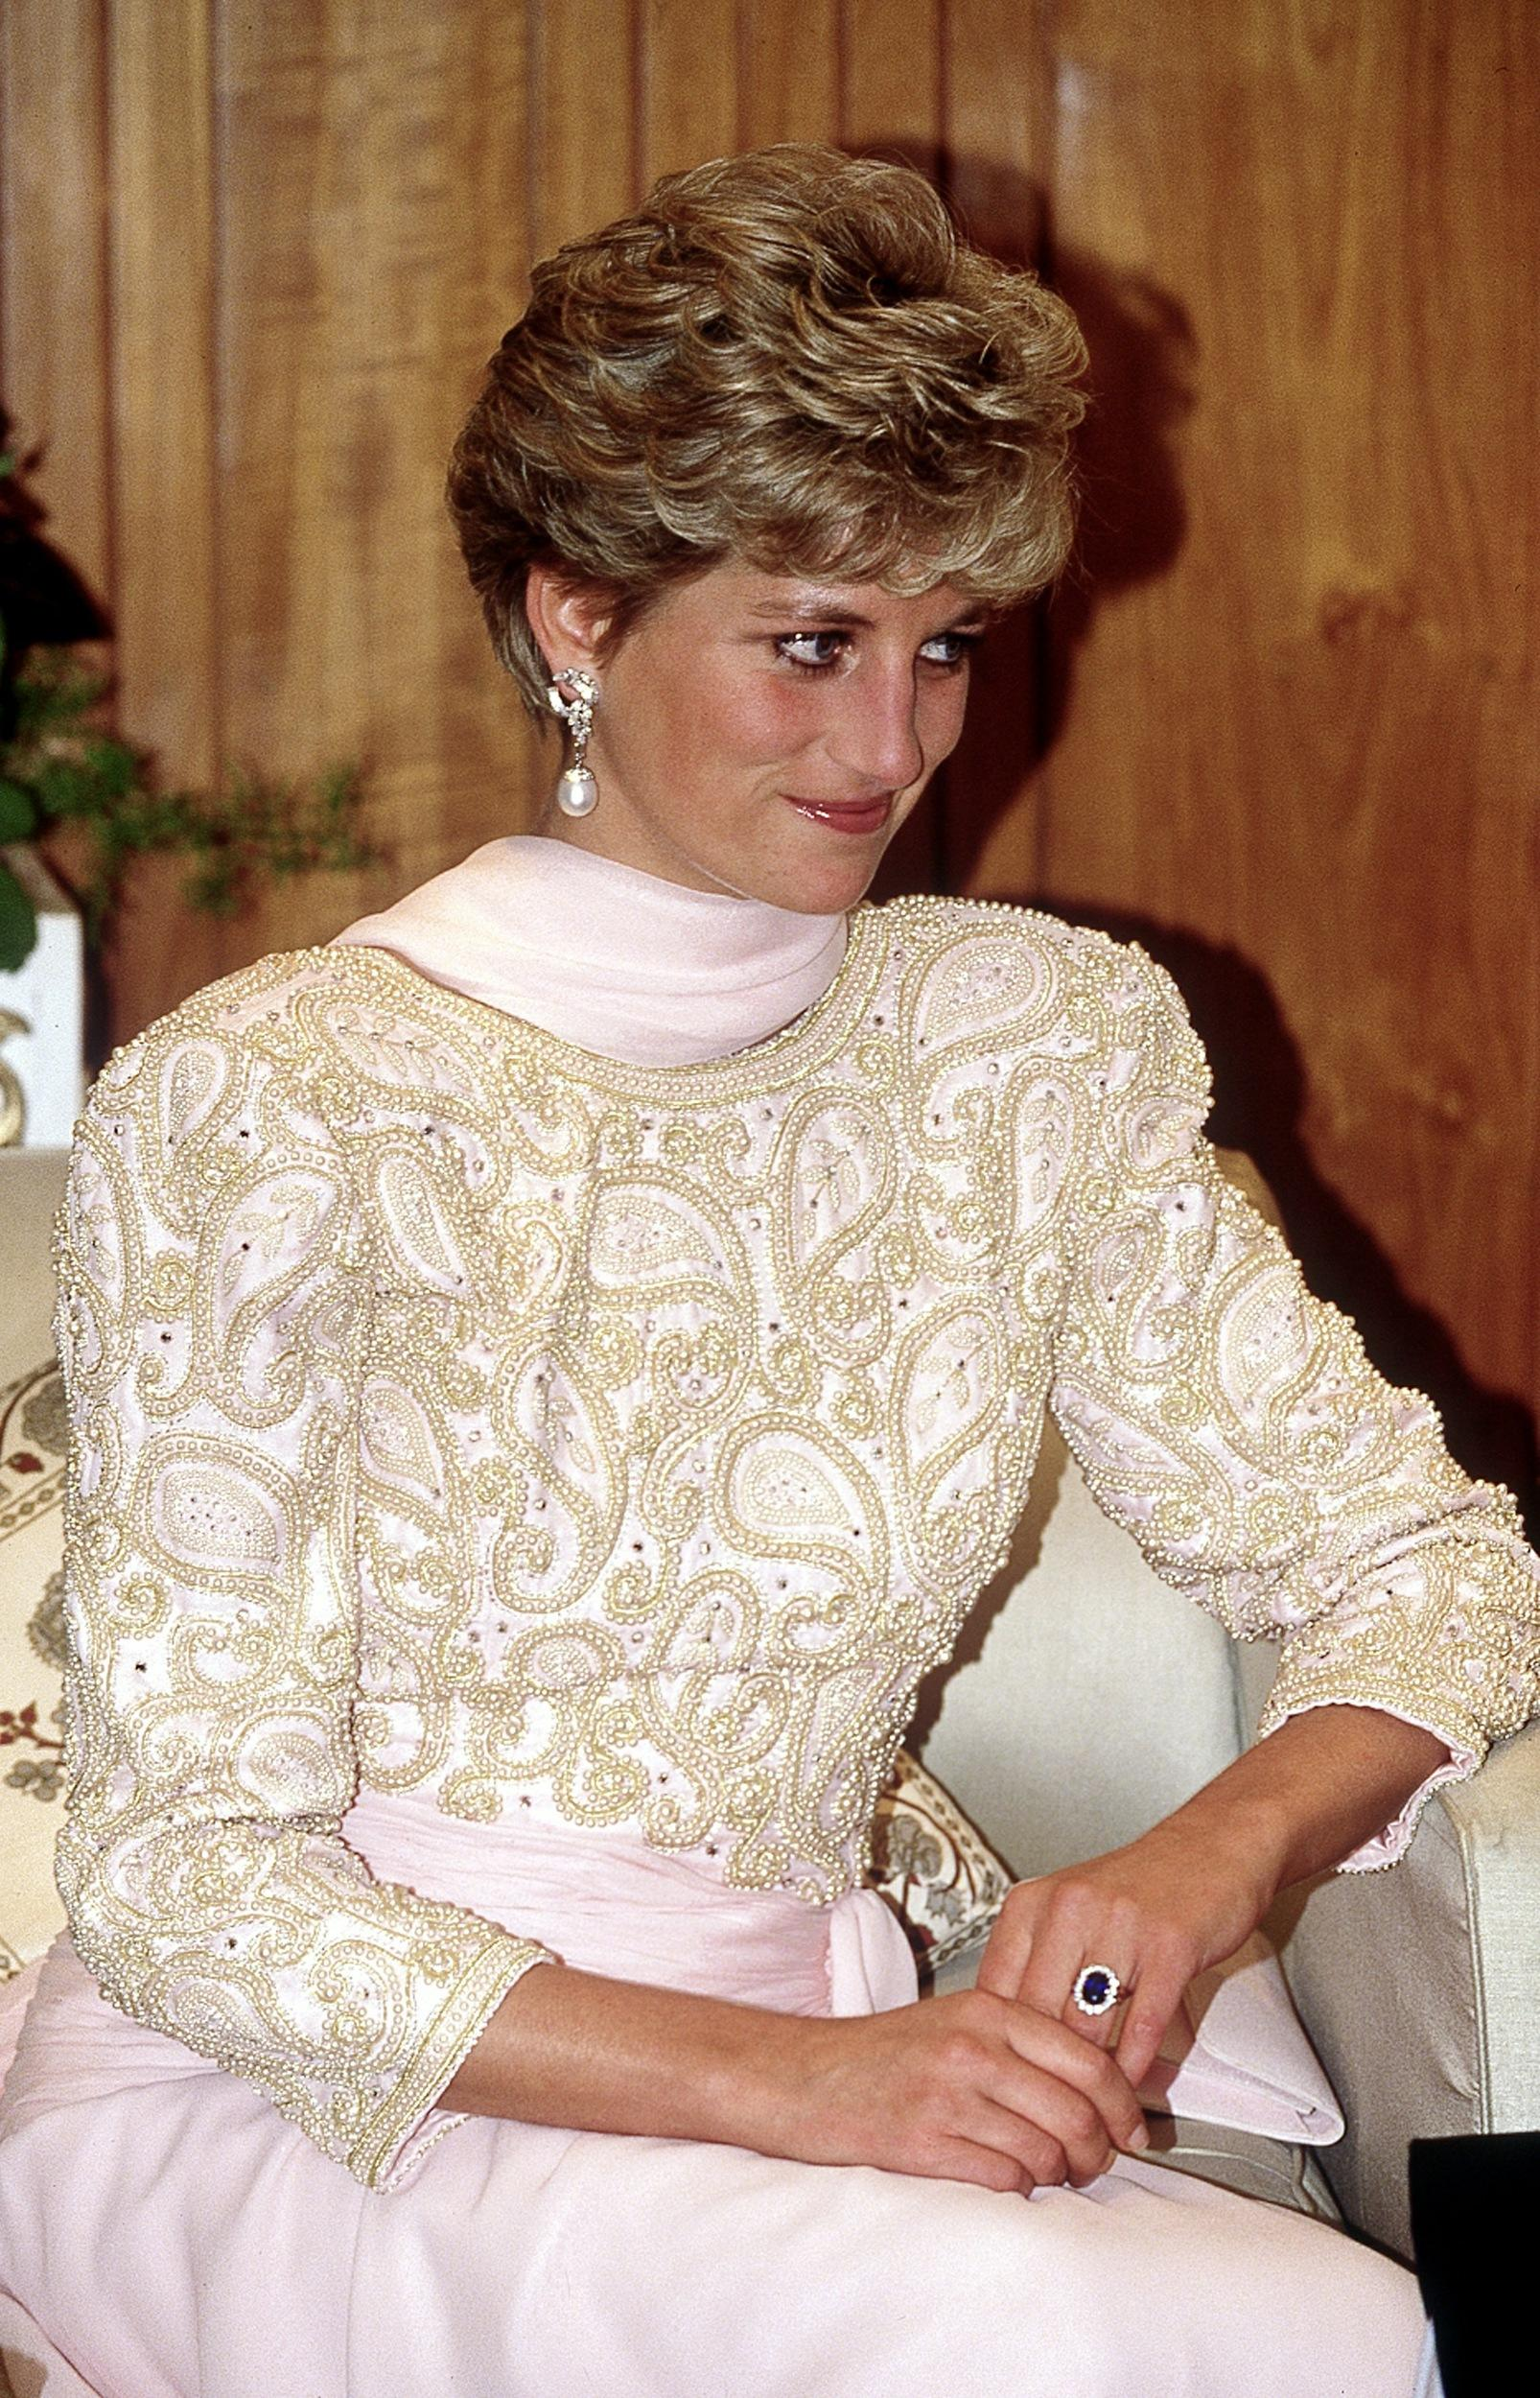 (FILE PHOTO) The Princess of Wales attends a dinner held by President Ghulam Ishaq Khan in Islamabad during her official visit to Pakistan, September 1991.